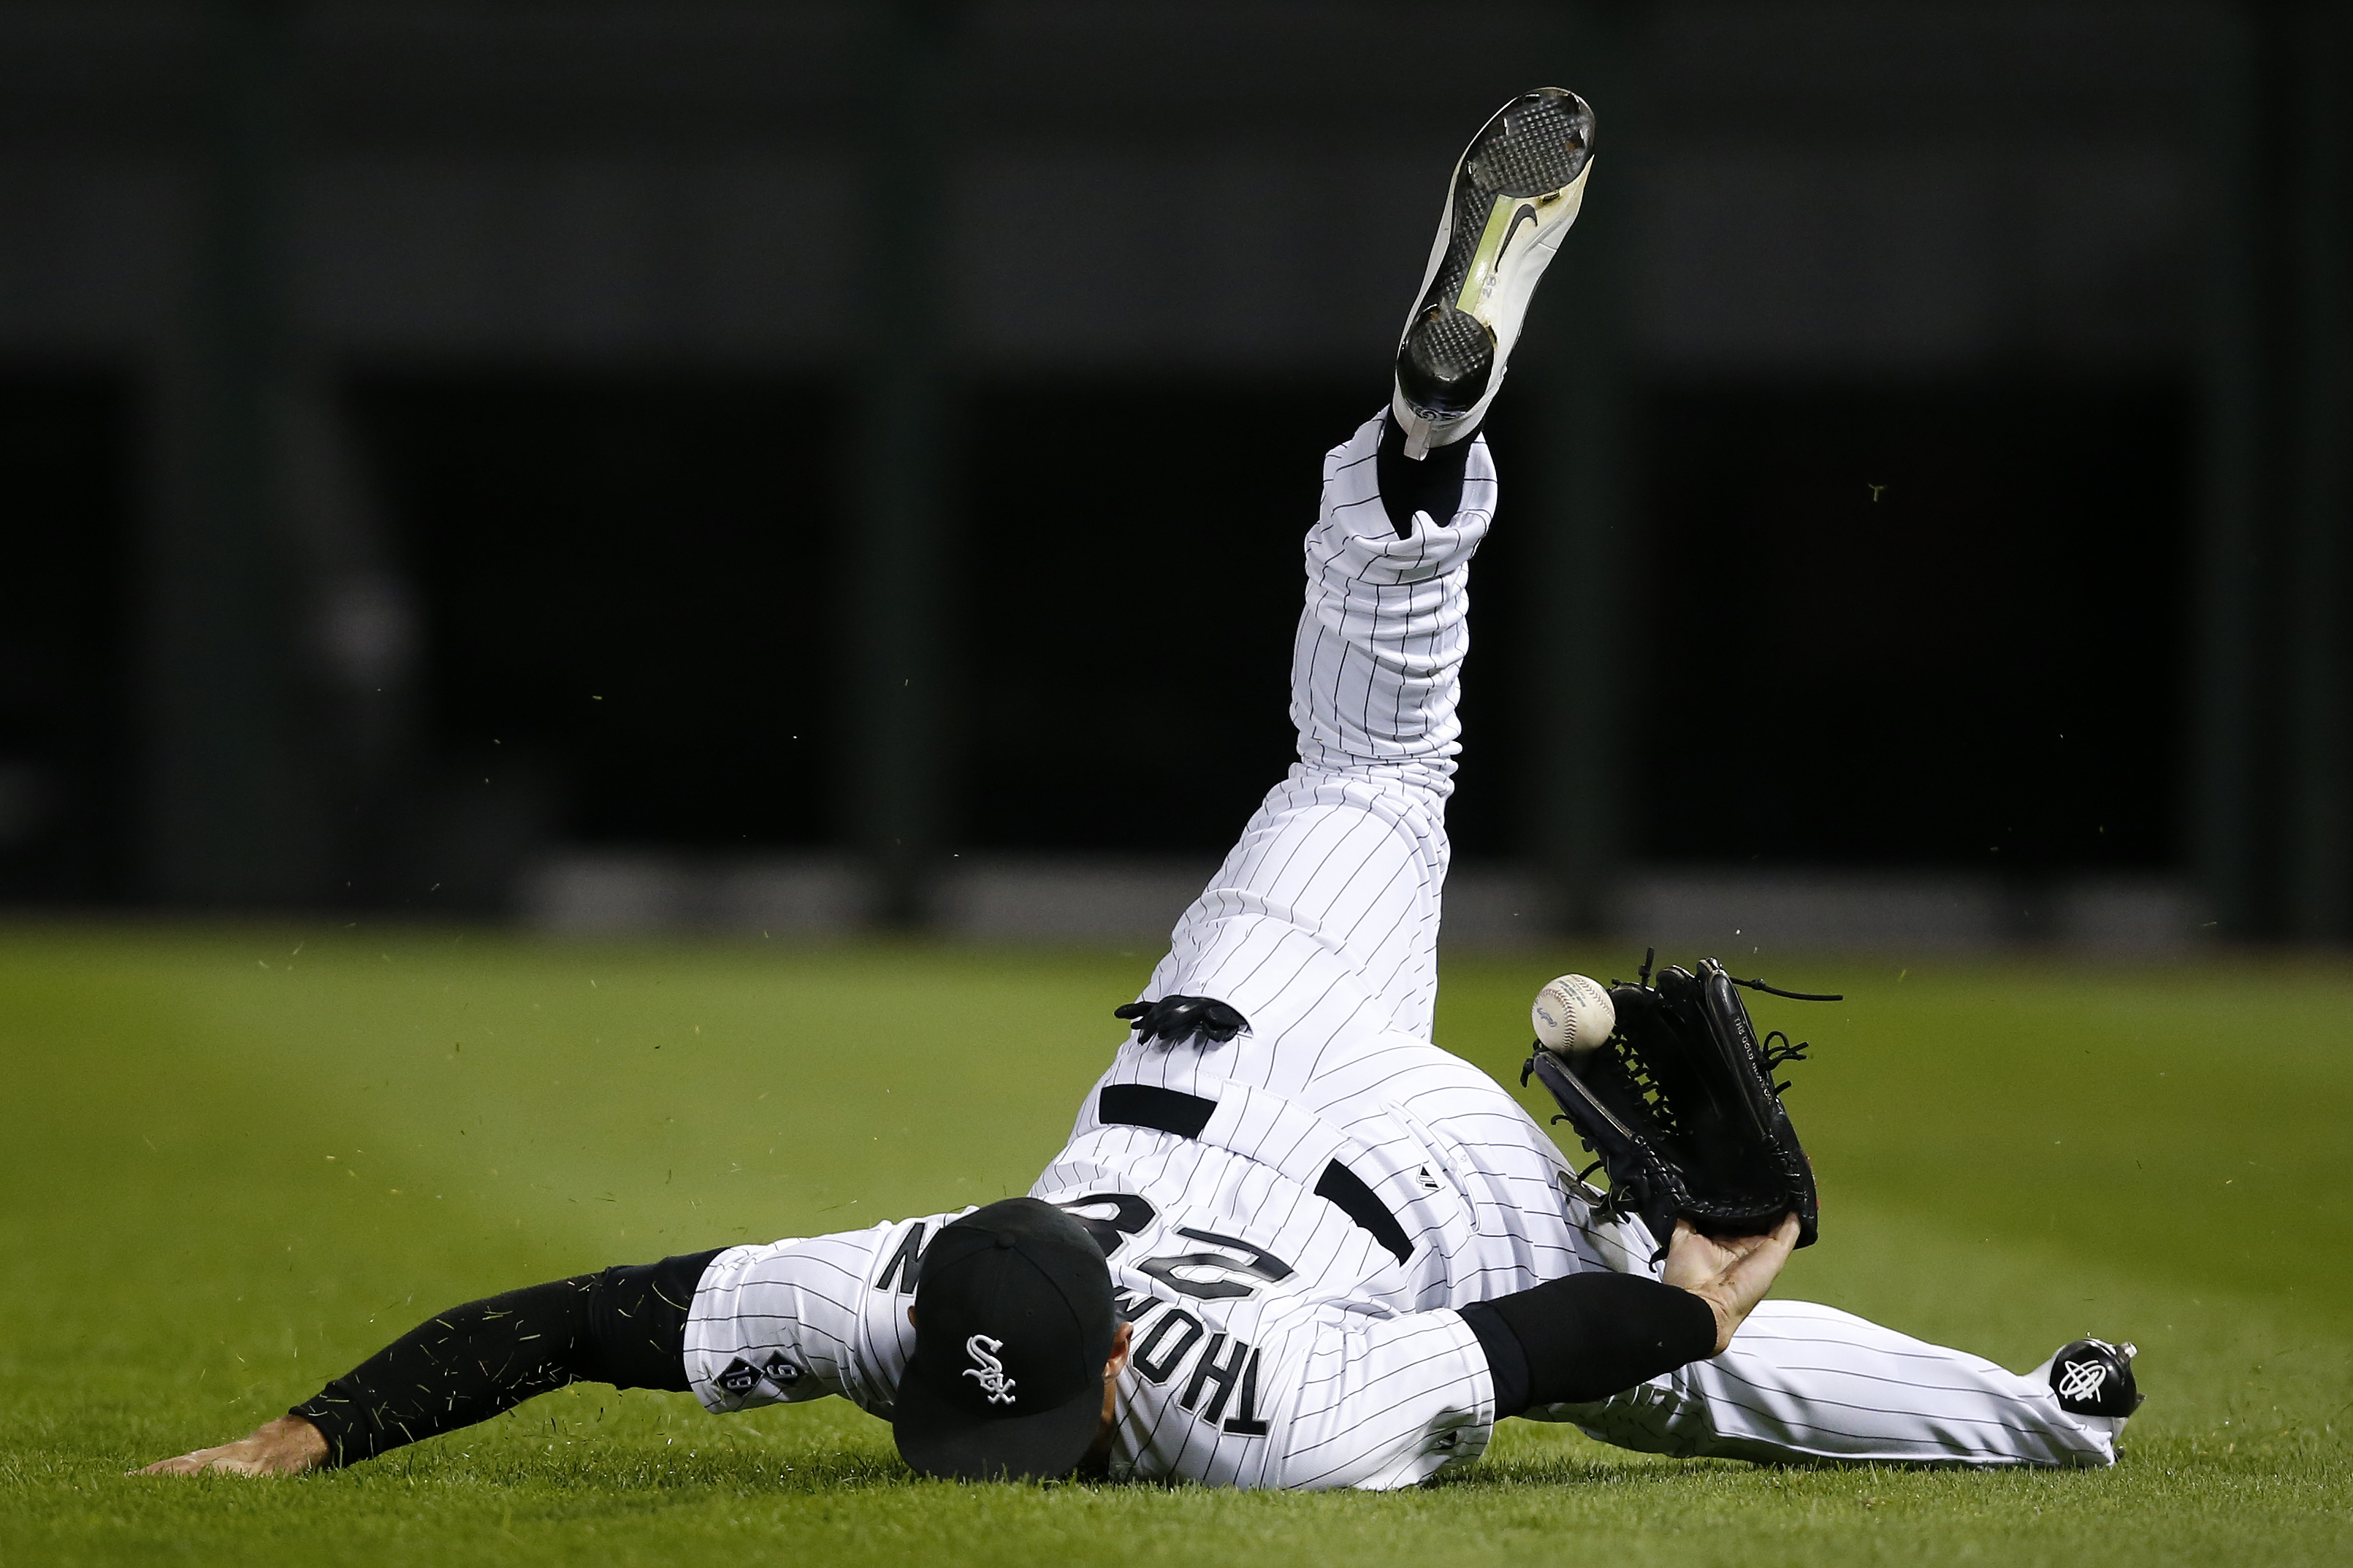 Chicago White Sox right fielder Trayce Thompson loses the ball on a double hit by Oakland Athletics' Brett Lawrie during the ninth inning of a baseball game, Monday, Sept. 14, 2015, in Chicago. (AP Photo/Andrew A. Nelles)